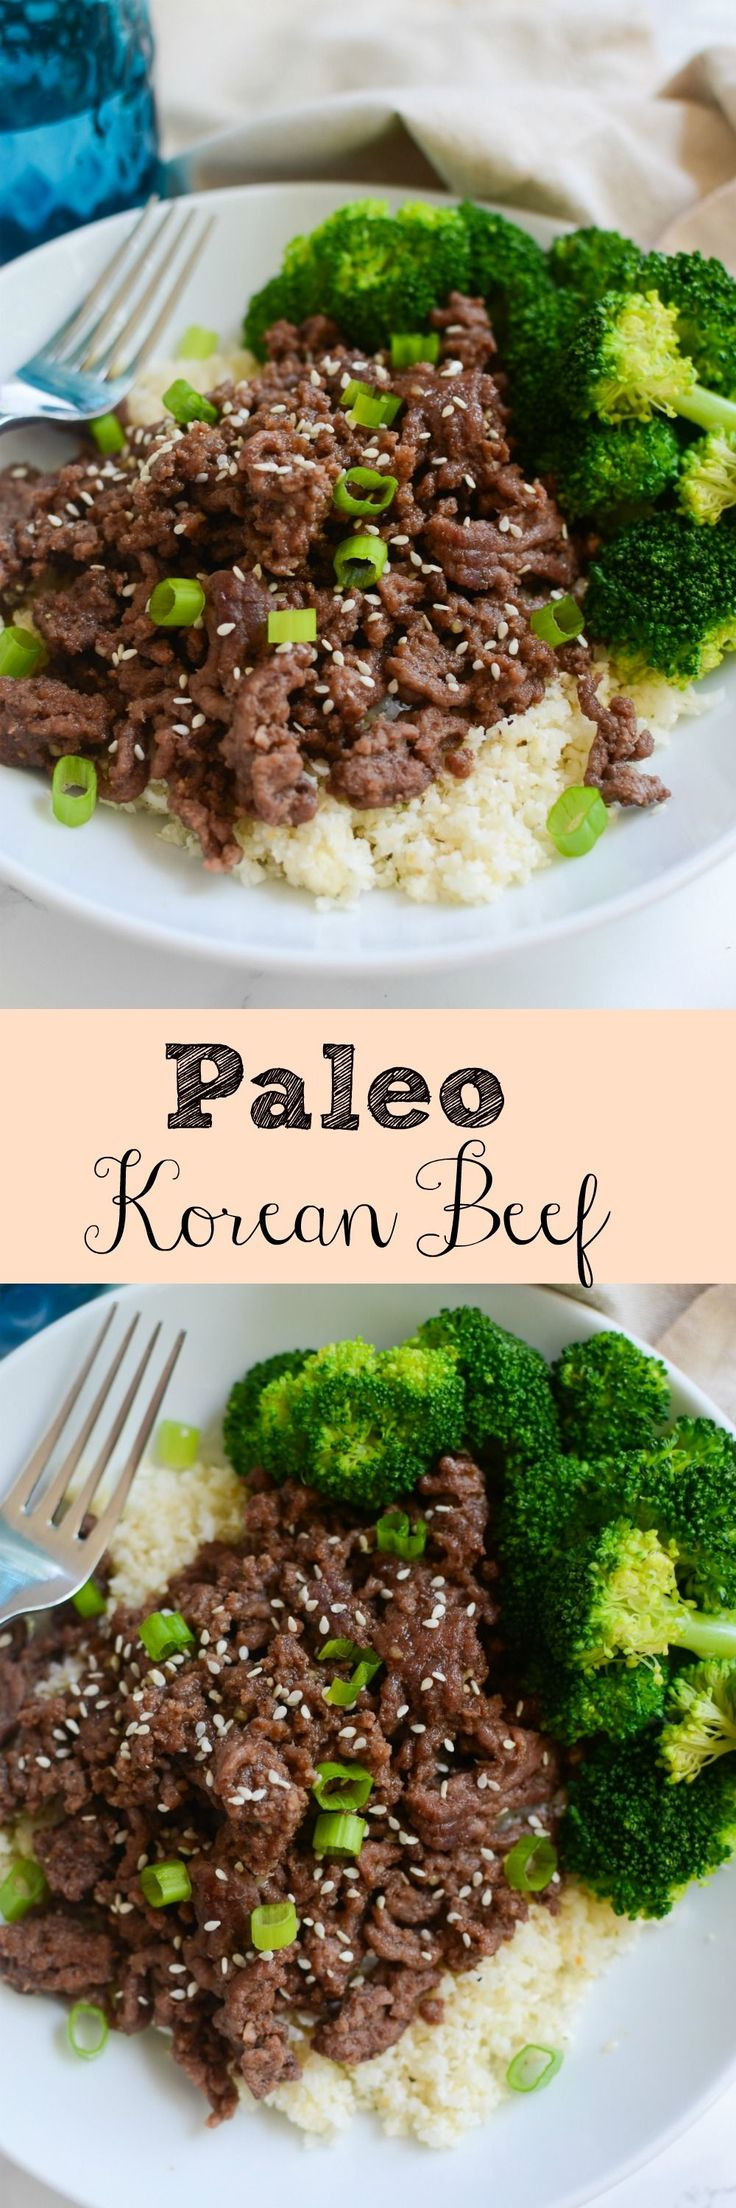 Paleo Korean Beef Bowls - delicious 20 minute meal! Spicy and sweet beef served over cauliflower rice!: